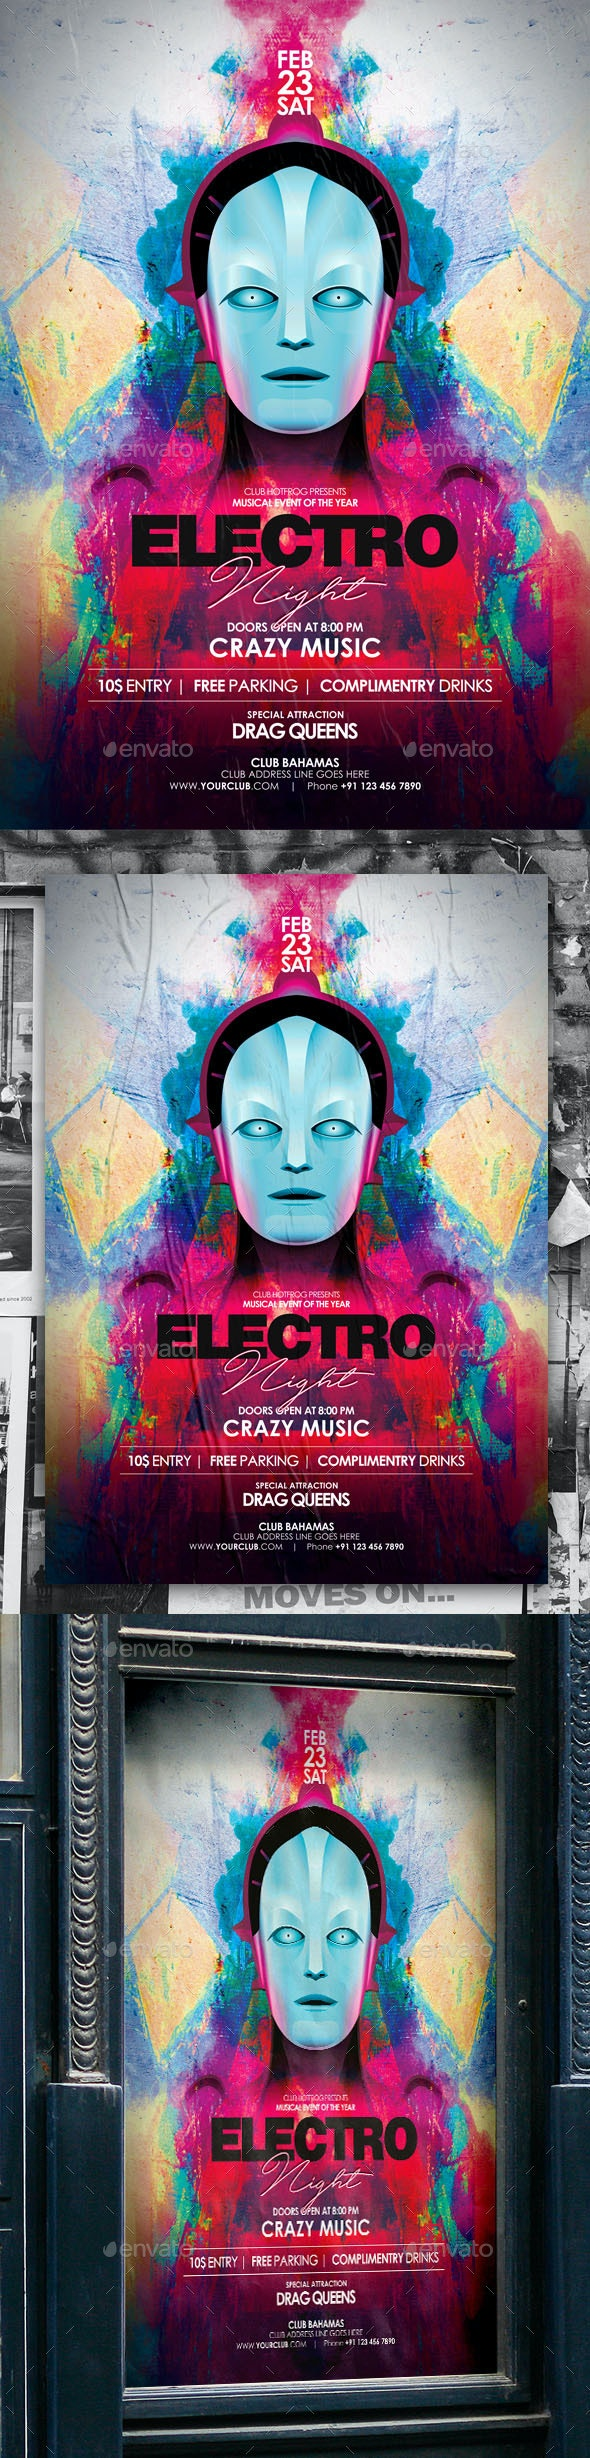 Electro Night Poster - Events Flyers